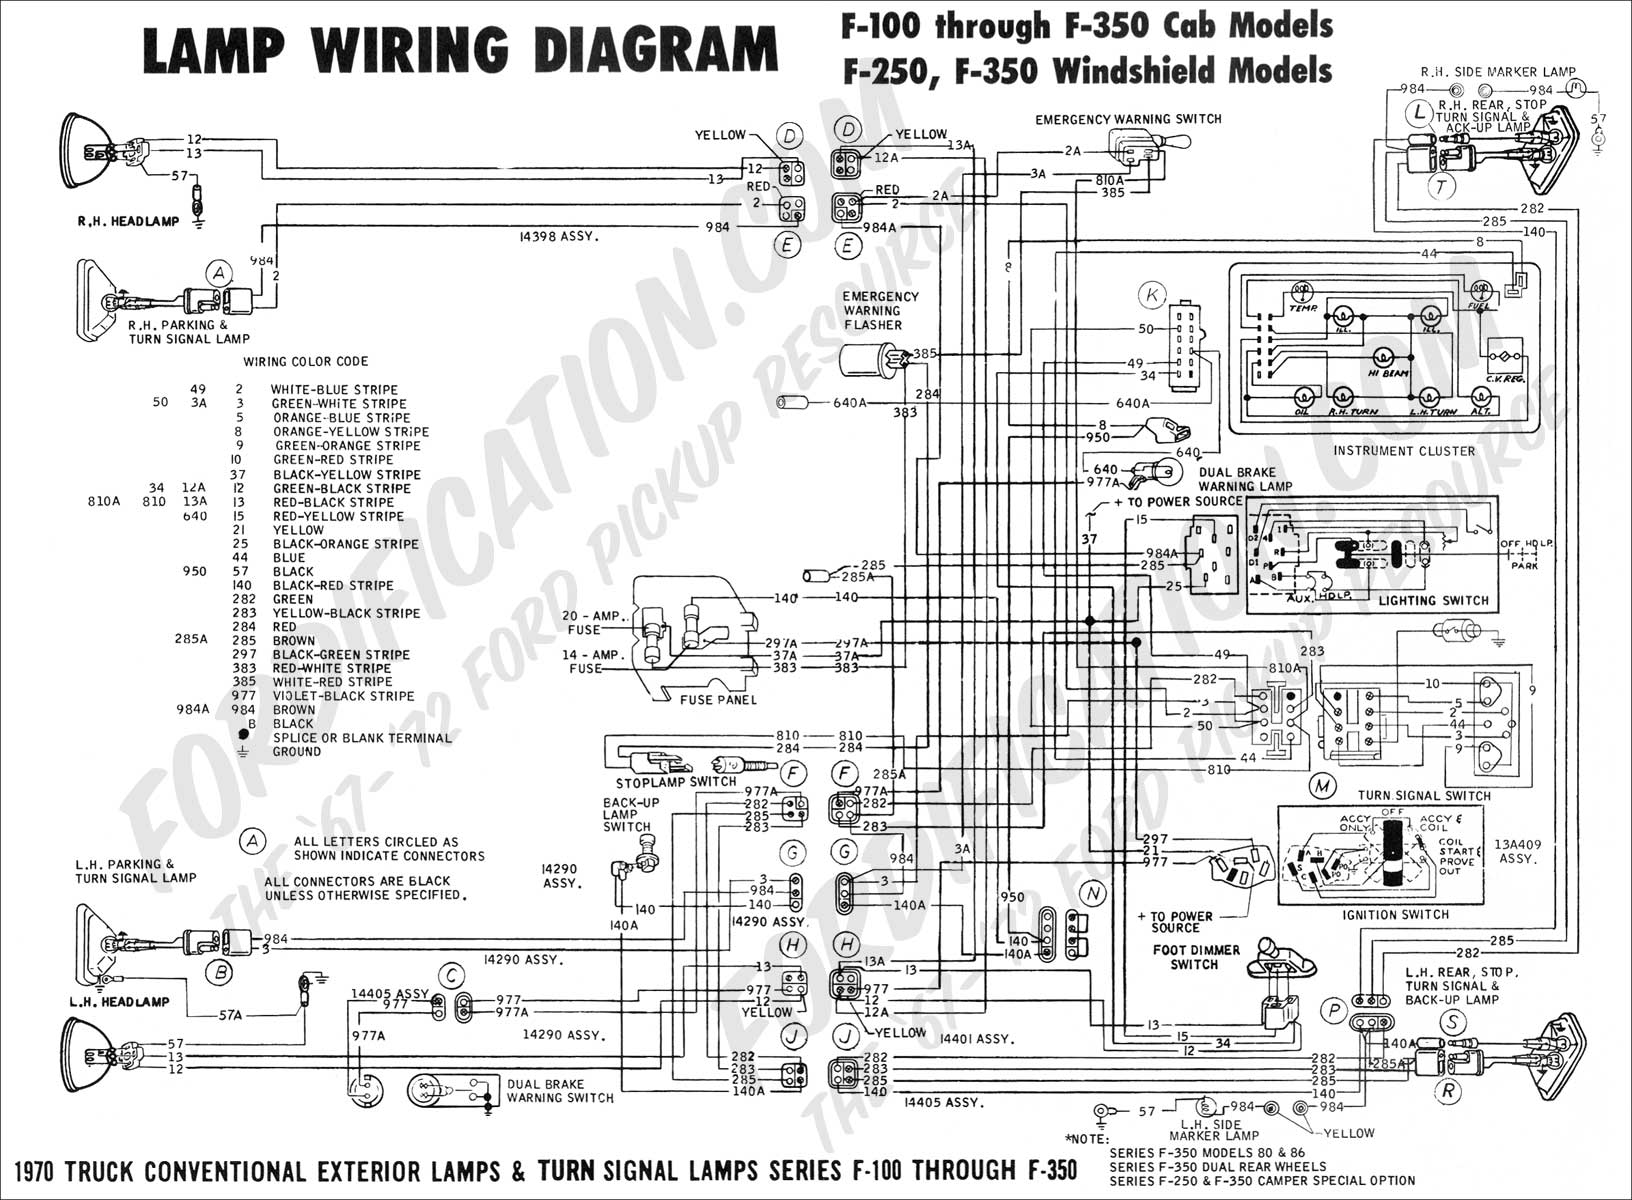 wiring diagram_70ext lights01?resize=665%2C489 wiring harness diagram for 4610 ford tractor the wiring diagram 2002 ford f250 wiring diagram at reclaimingppi.co